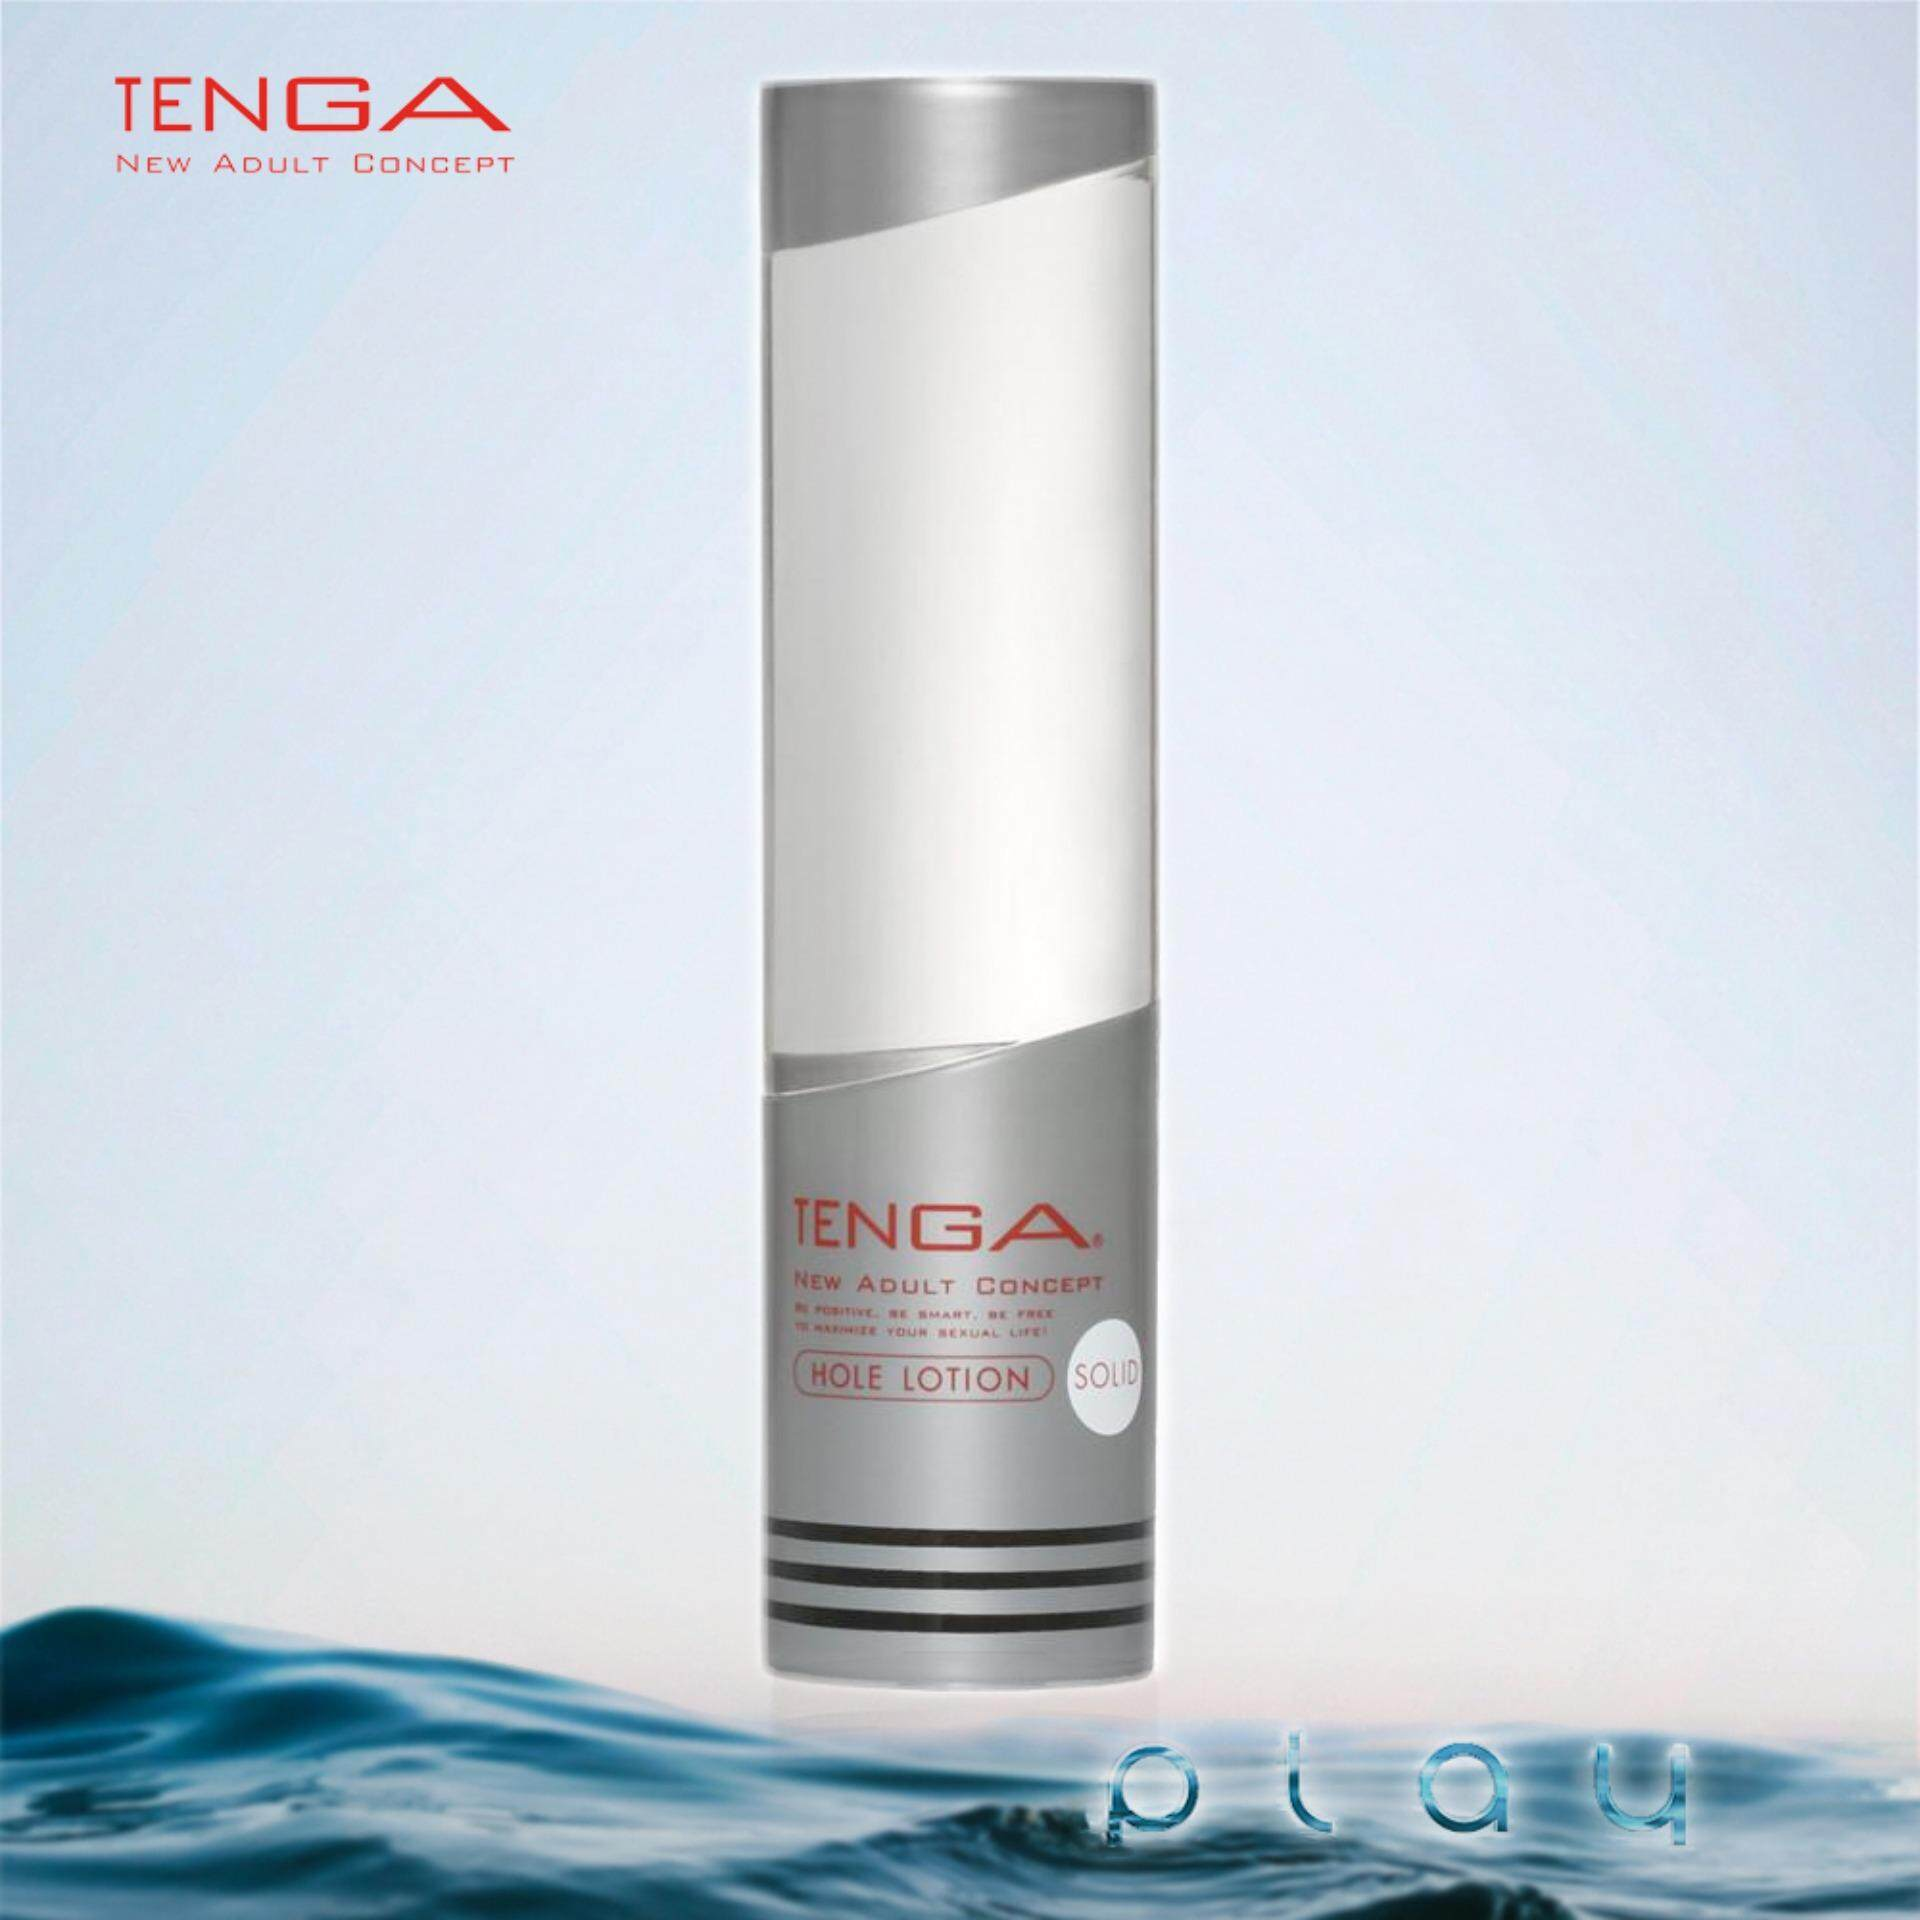 (KL Ready Stock) Tenga Hole Lotion Solid 170ml